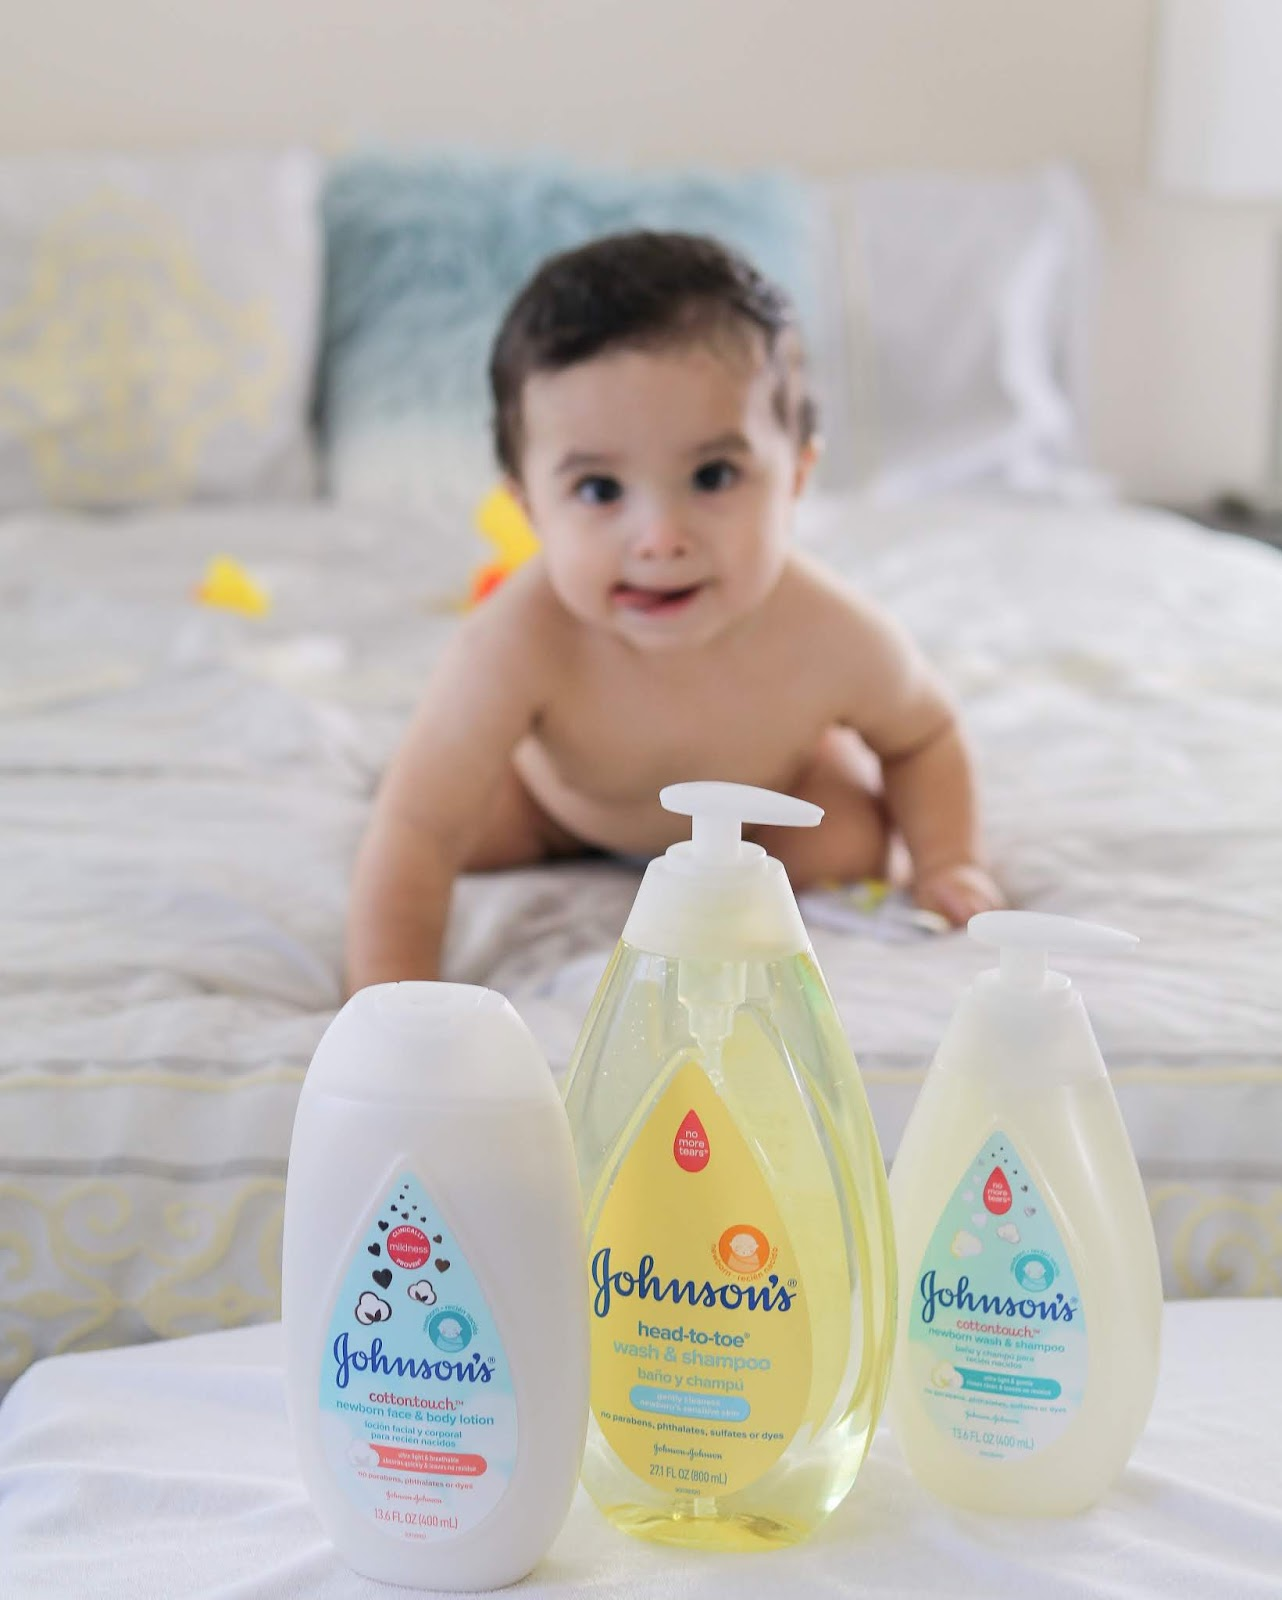 JOHNSON'S® Baby COTTONTOUCH™, johnson's baby products review